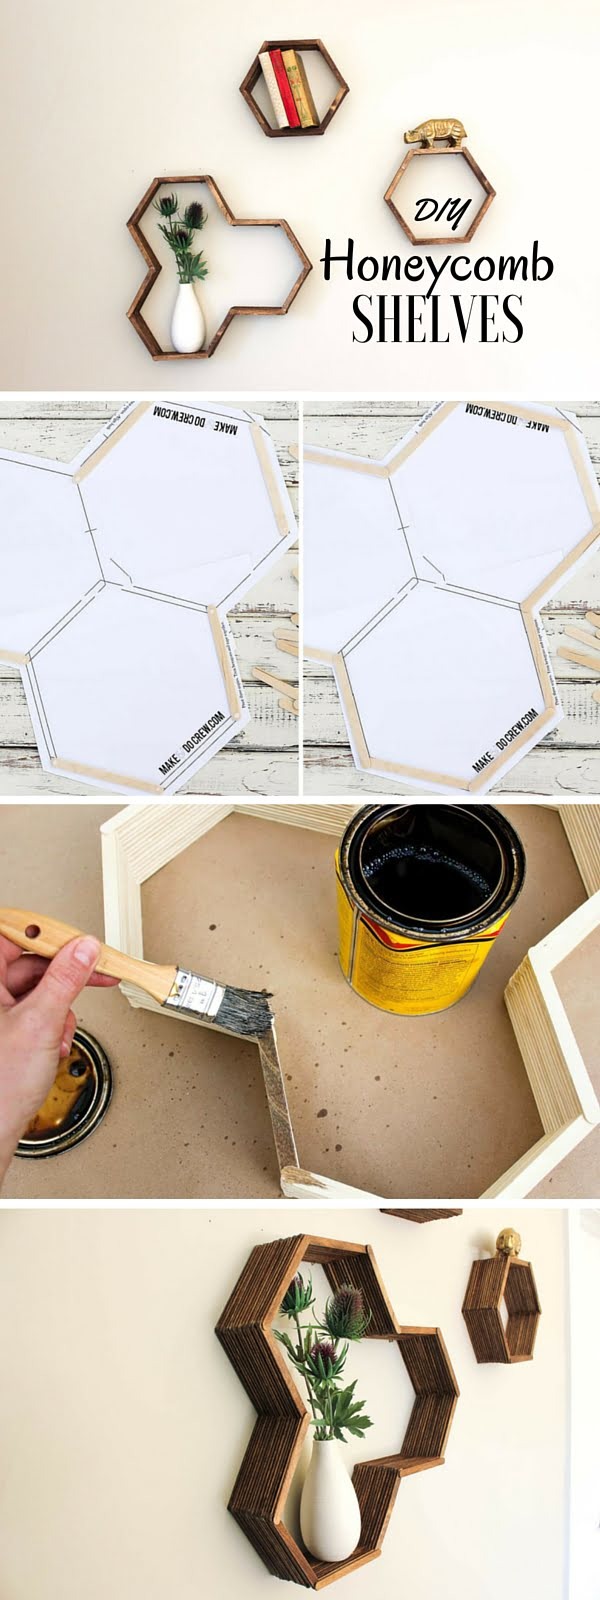 15 Easy and Brilliant DIY Home Decor Crafts on a Budget - Check out the tutorial: #DIY Honeycomb Shelves